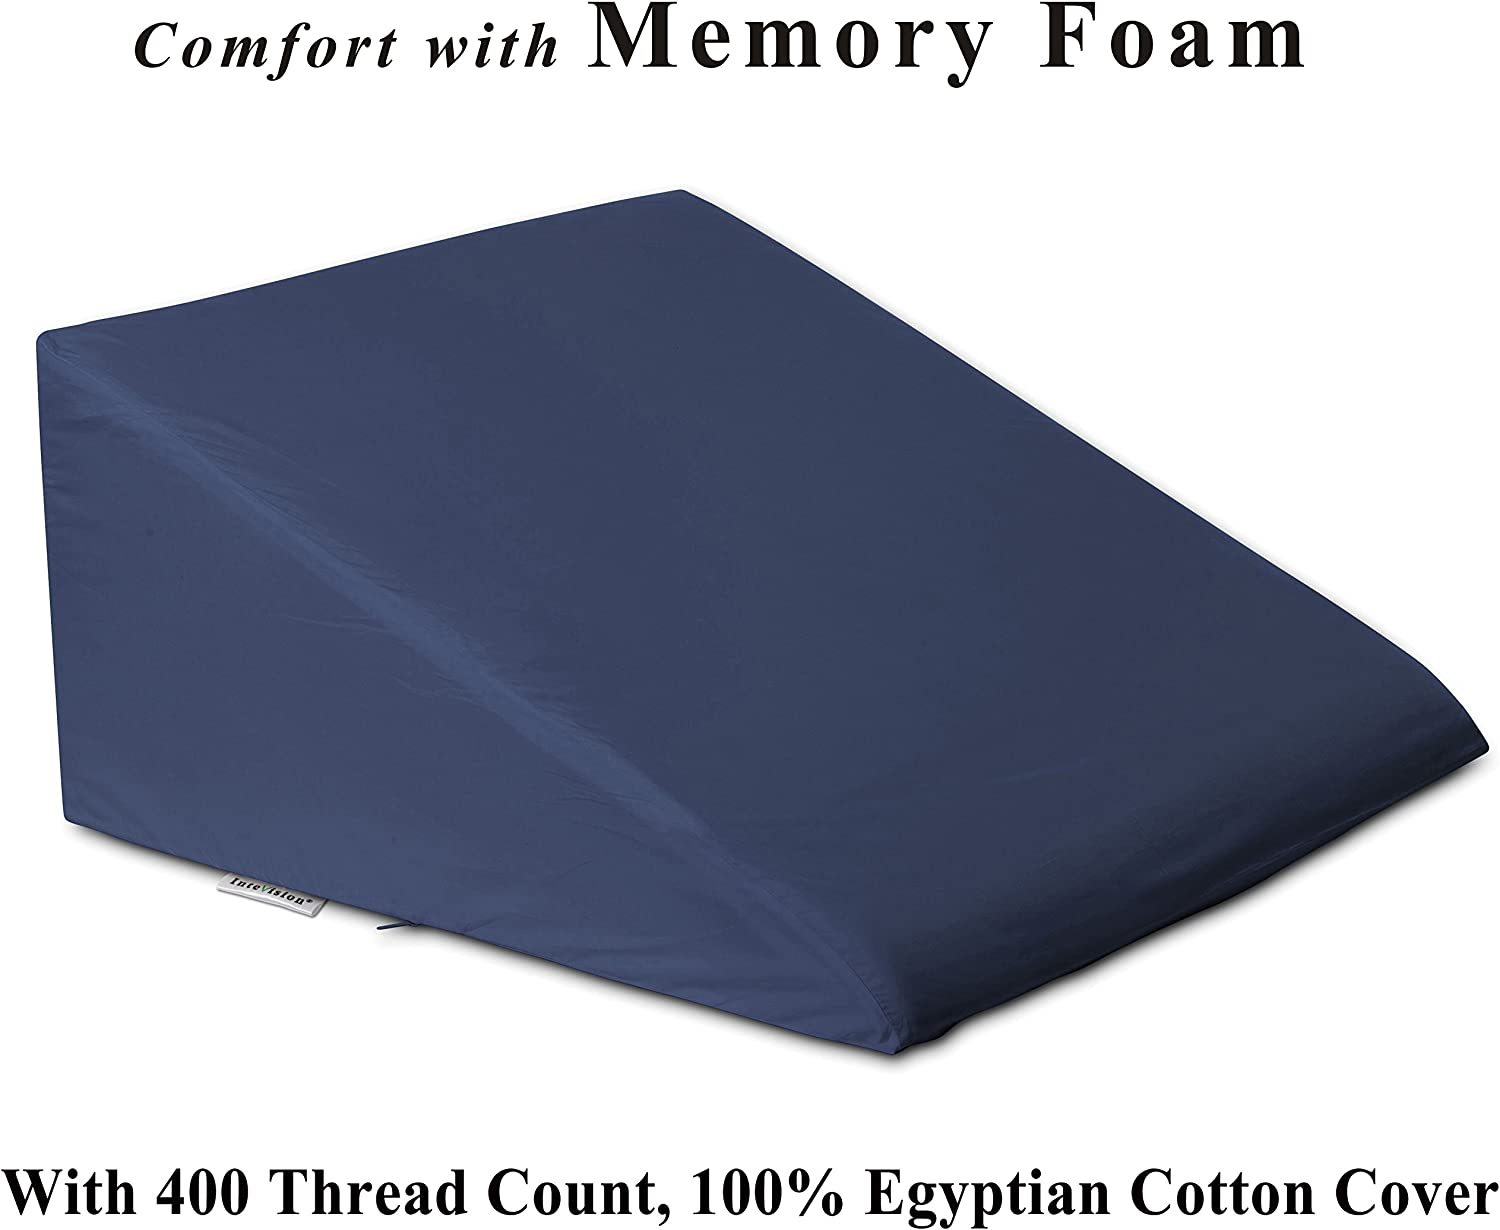 InteVision Foam Bed Wedge Pillow (25  x 24  x 12 ) - 2  Memory Foam Top Layer with Firm Base Foam and a 400 Thread Count, 100% Egyptian Cotton Cover - Helps Relief from Acid Reflux, Post Surgery